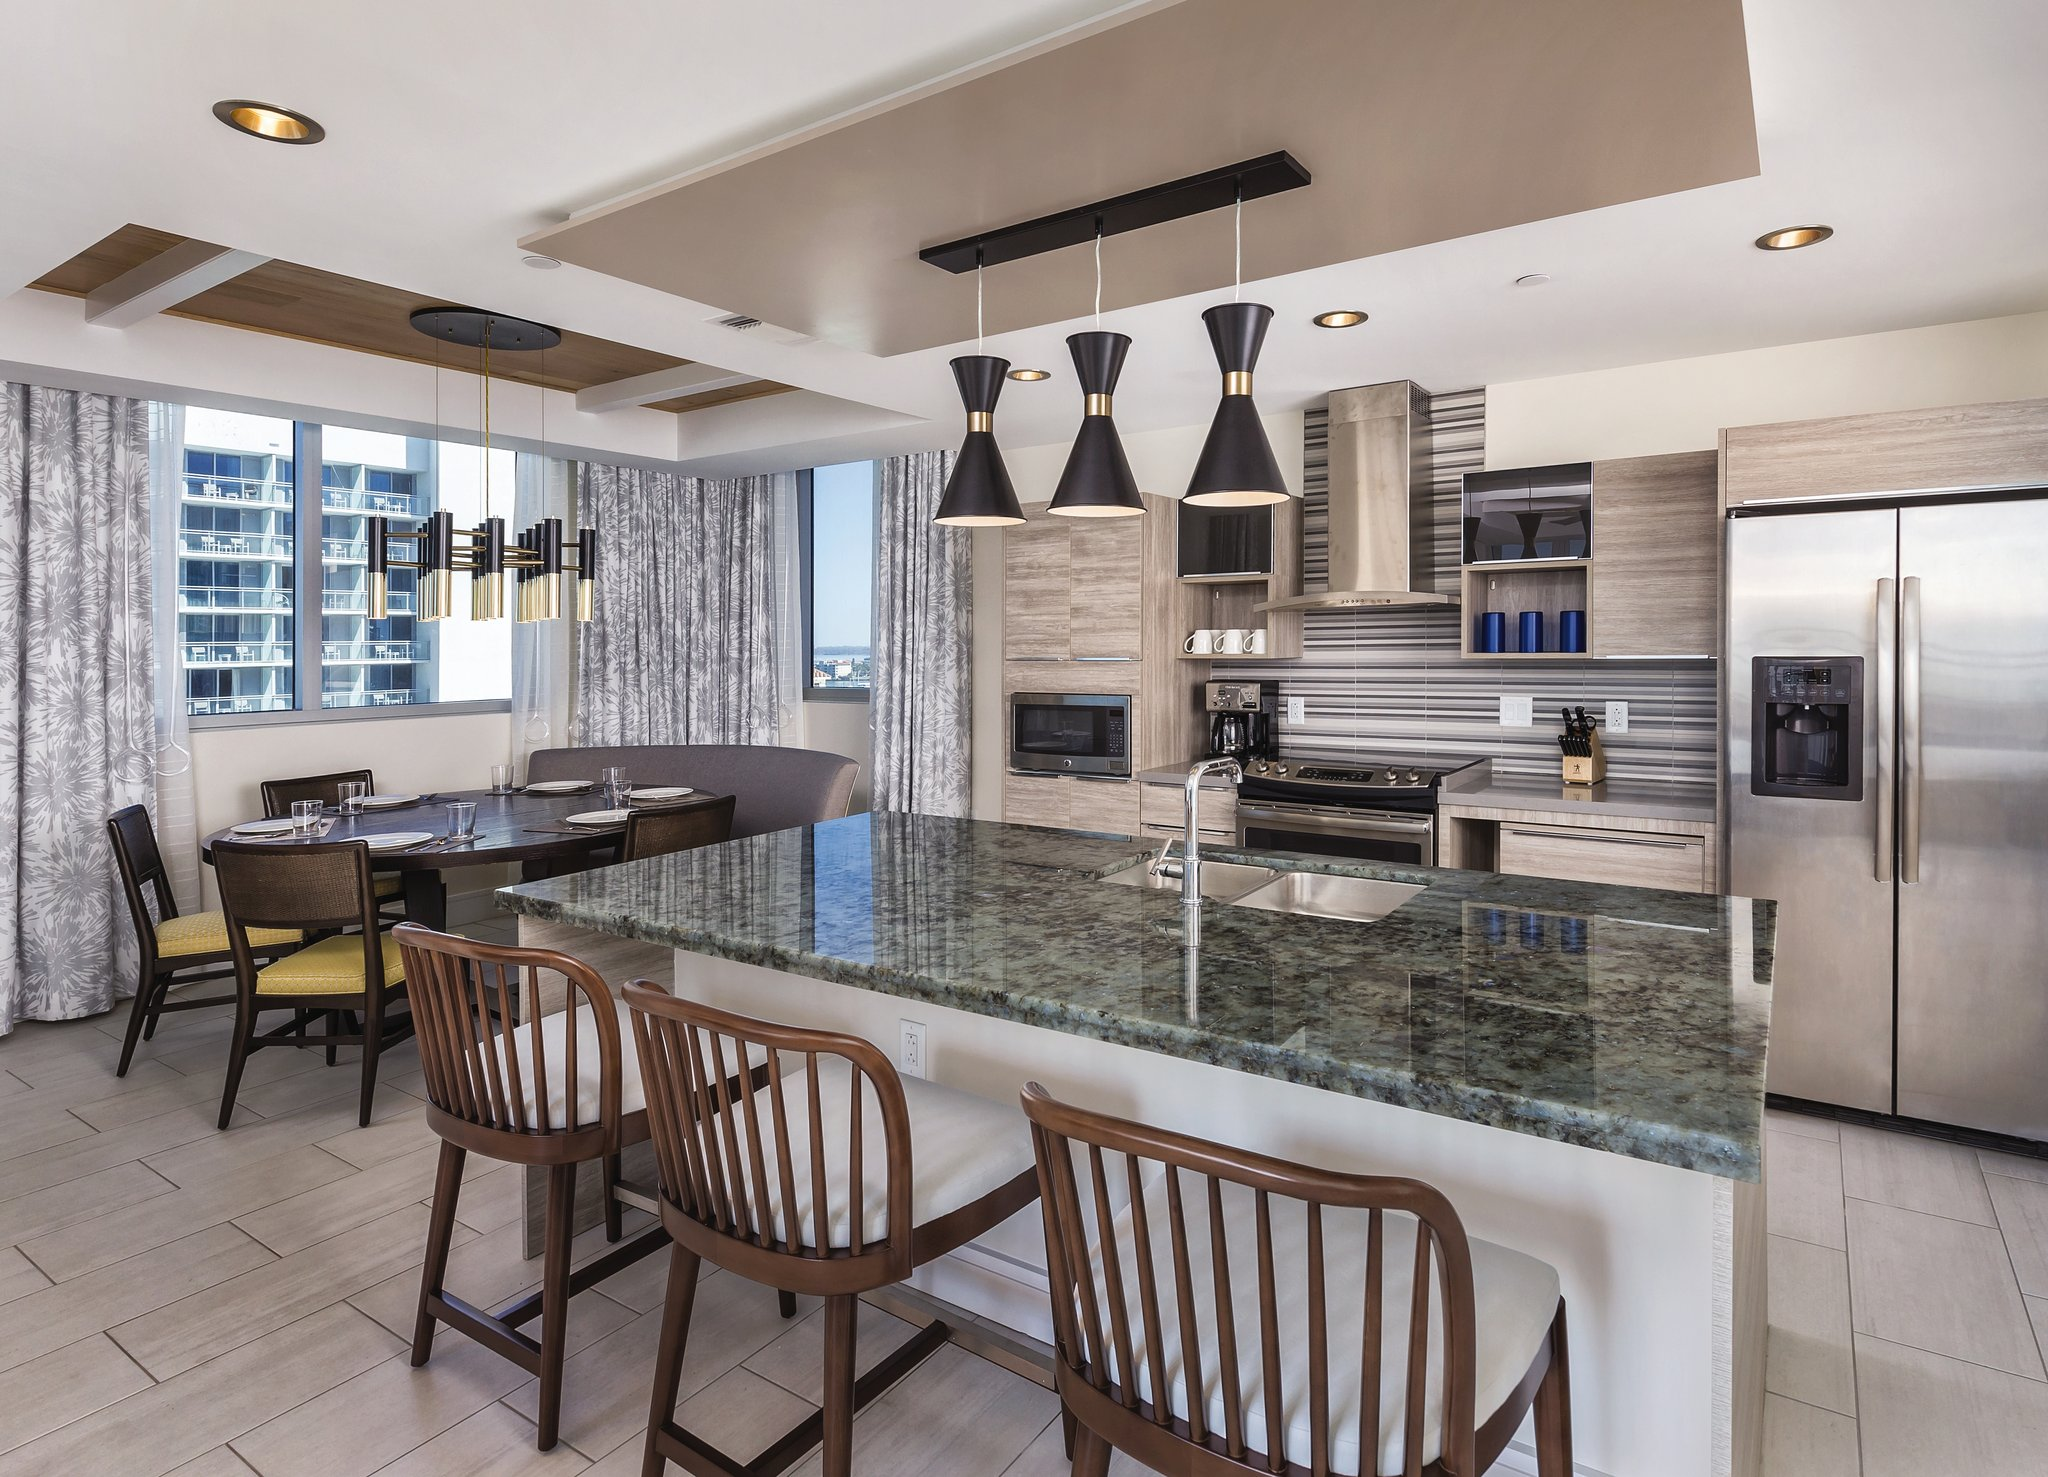 Wyndham Clearwater Beach Resort Kitchen and Dining